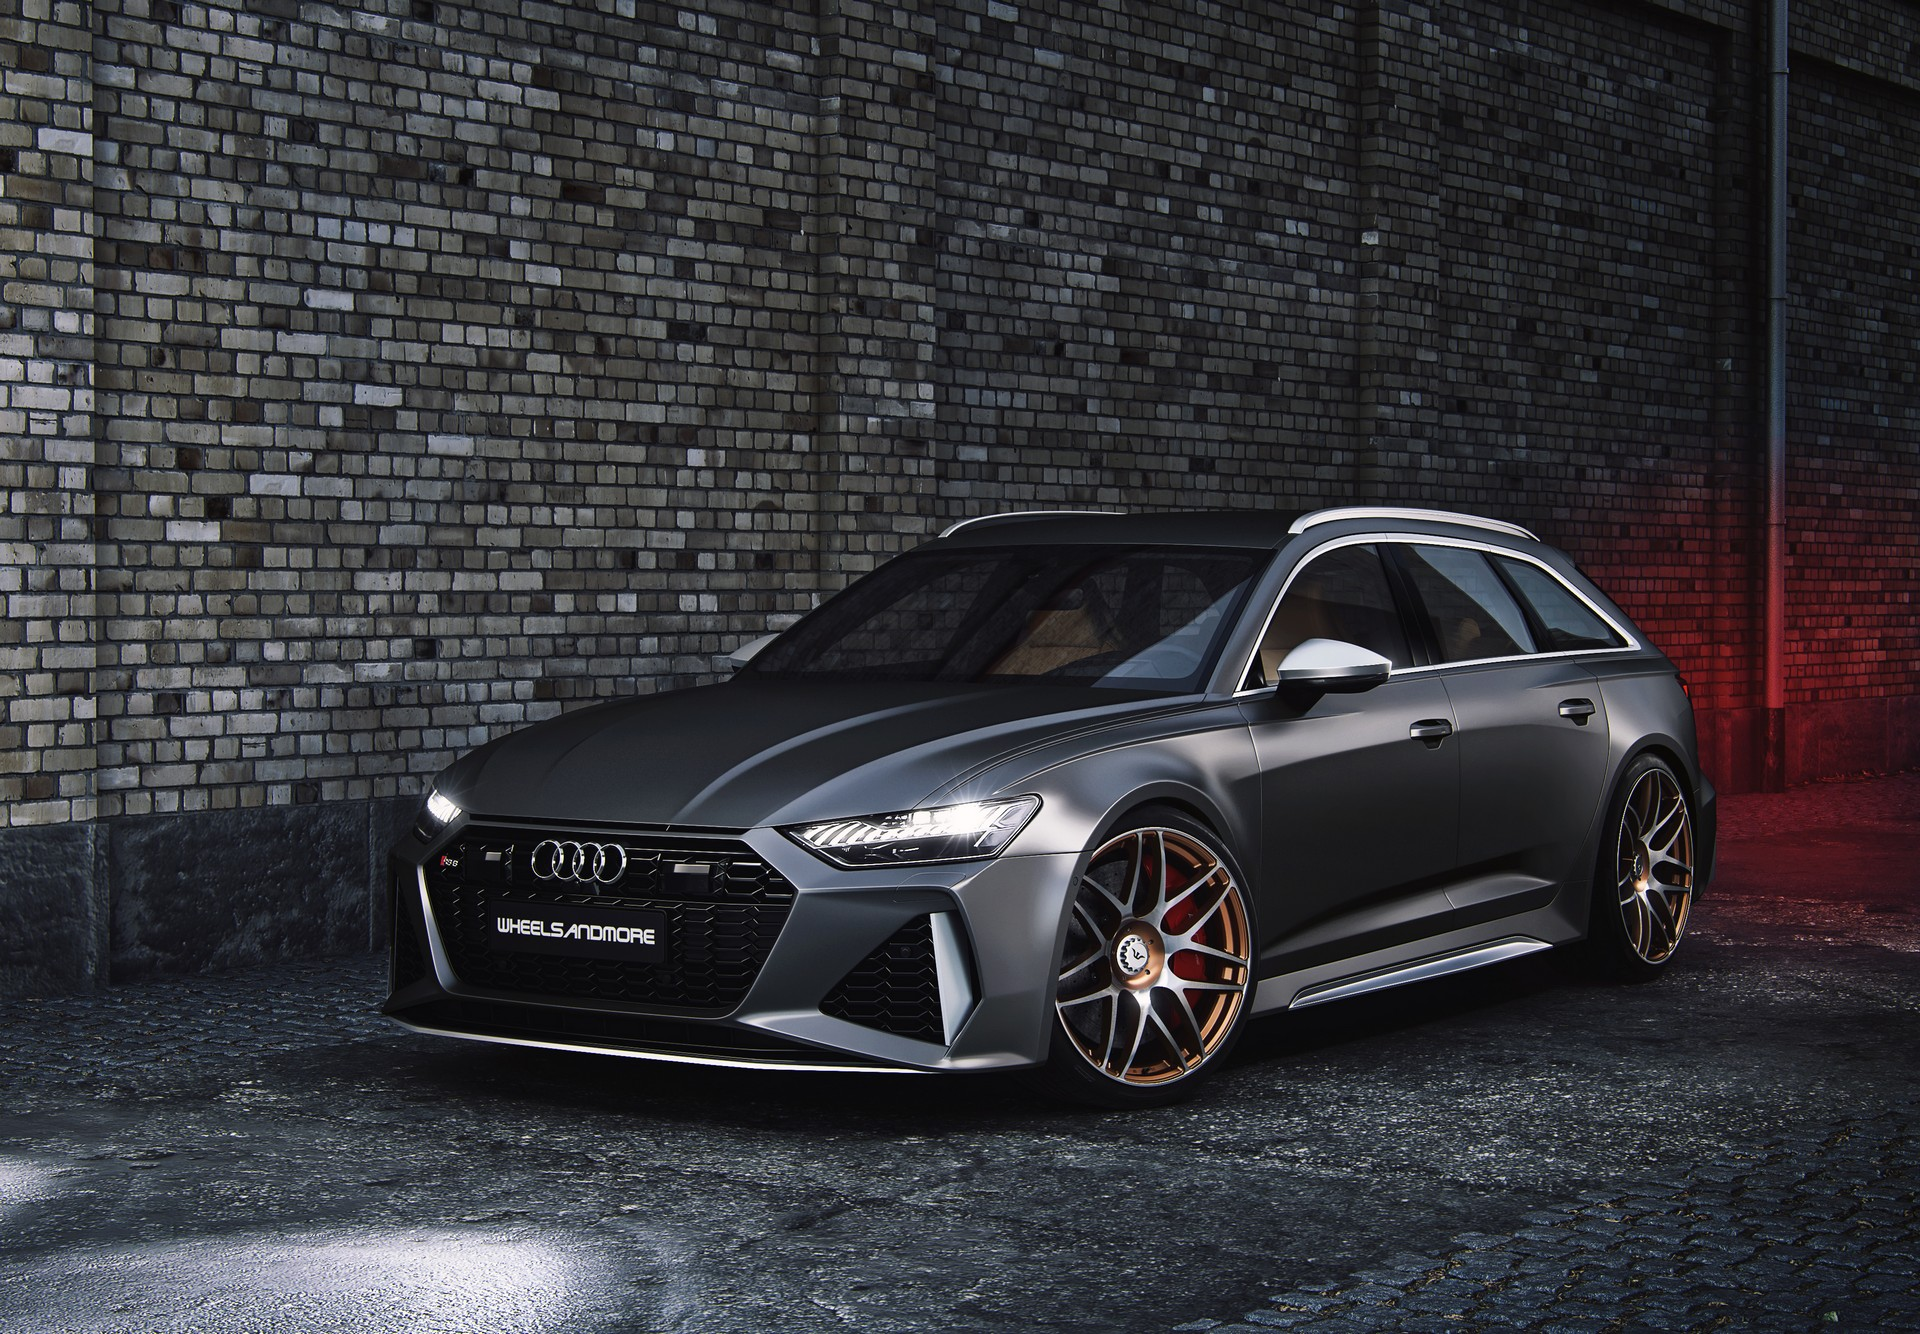 Audi RS6 Avant 2020 Wheelsandmore